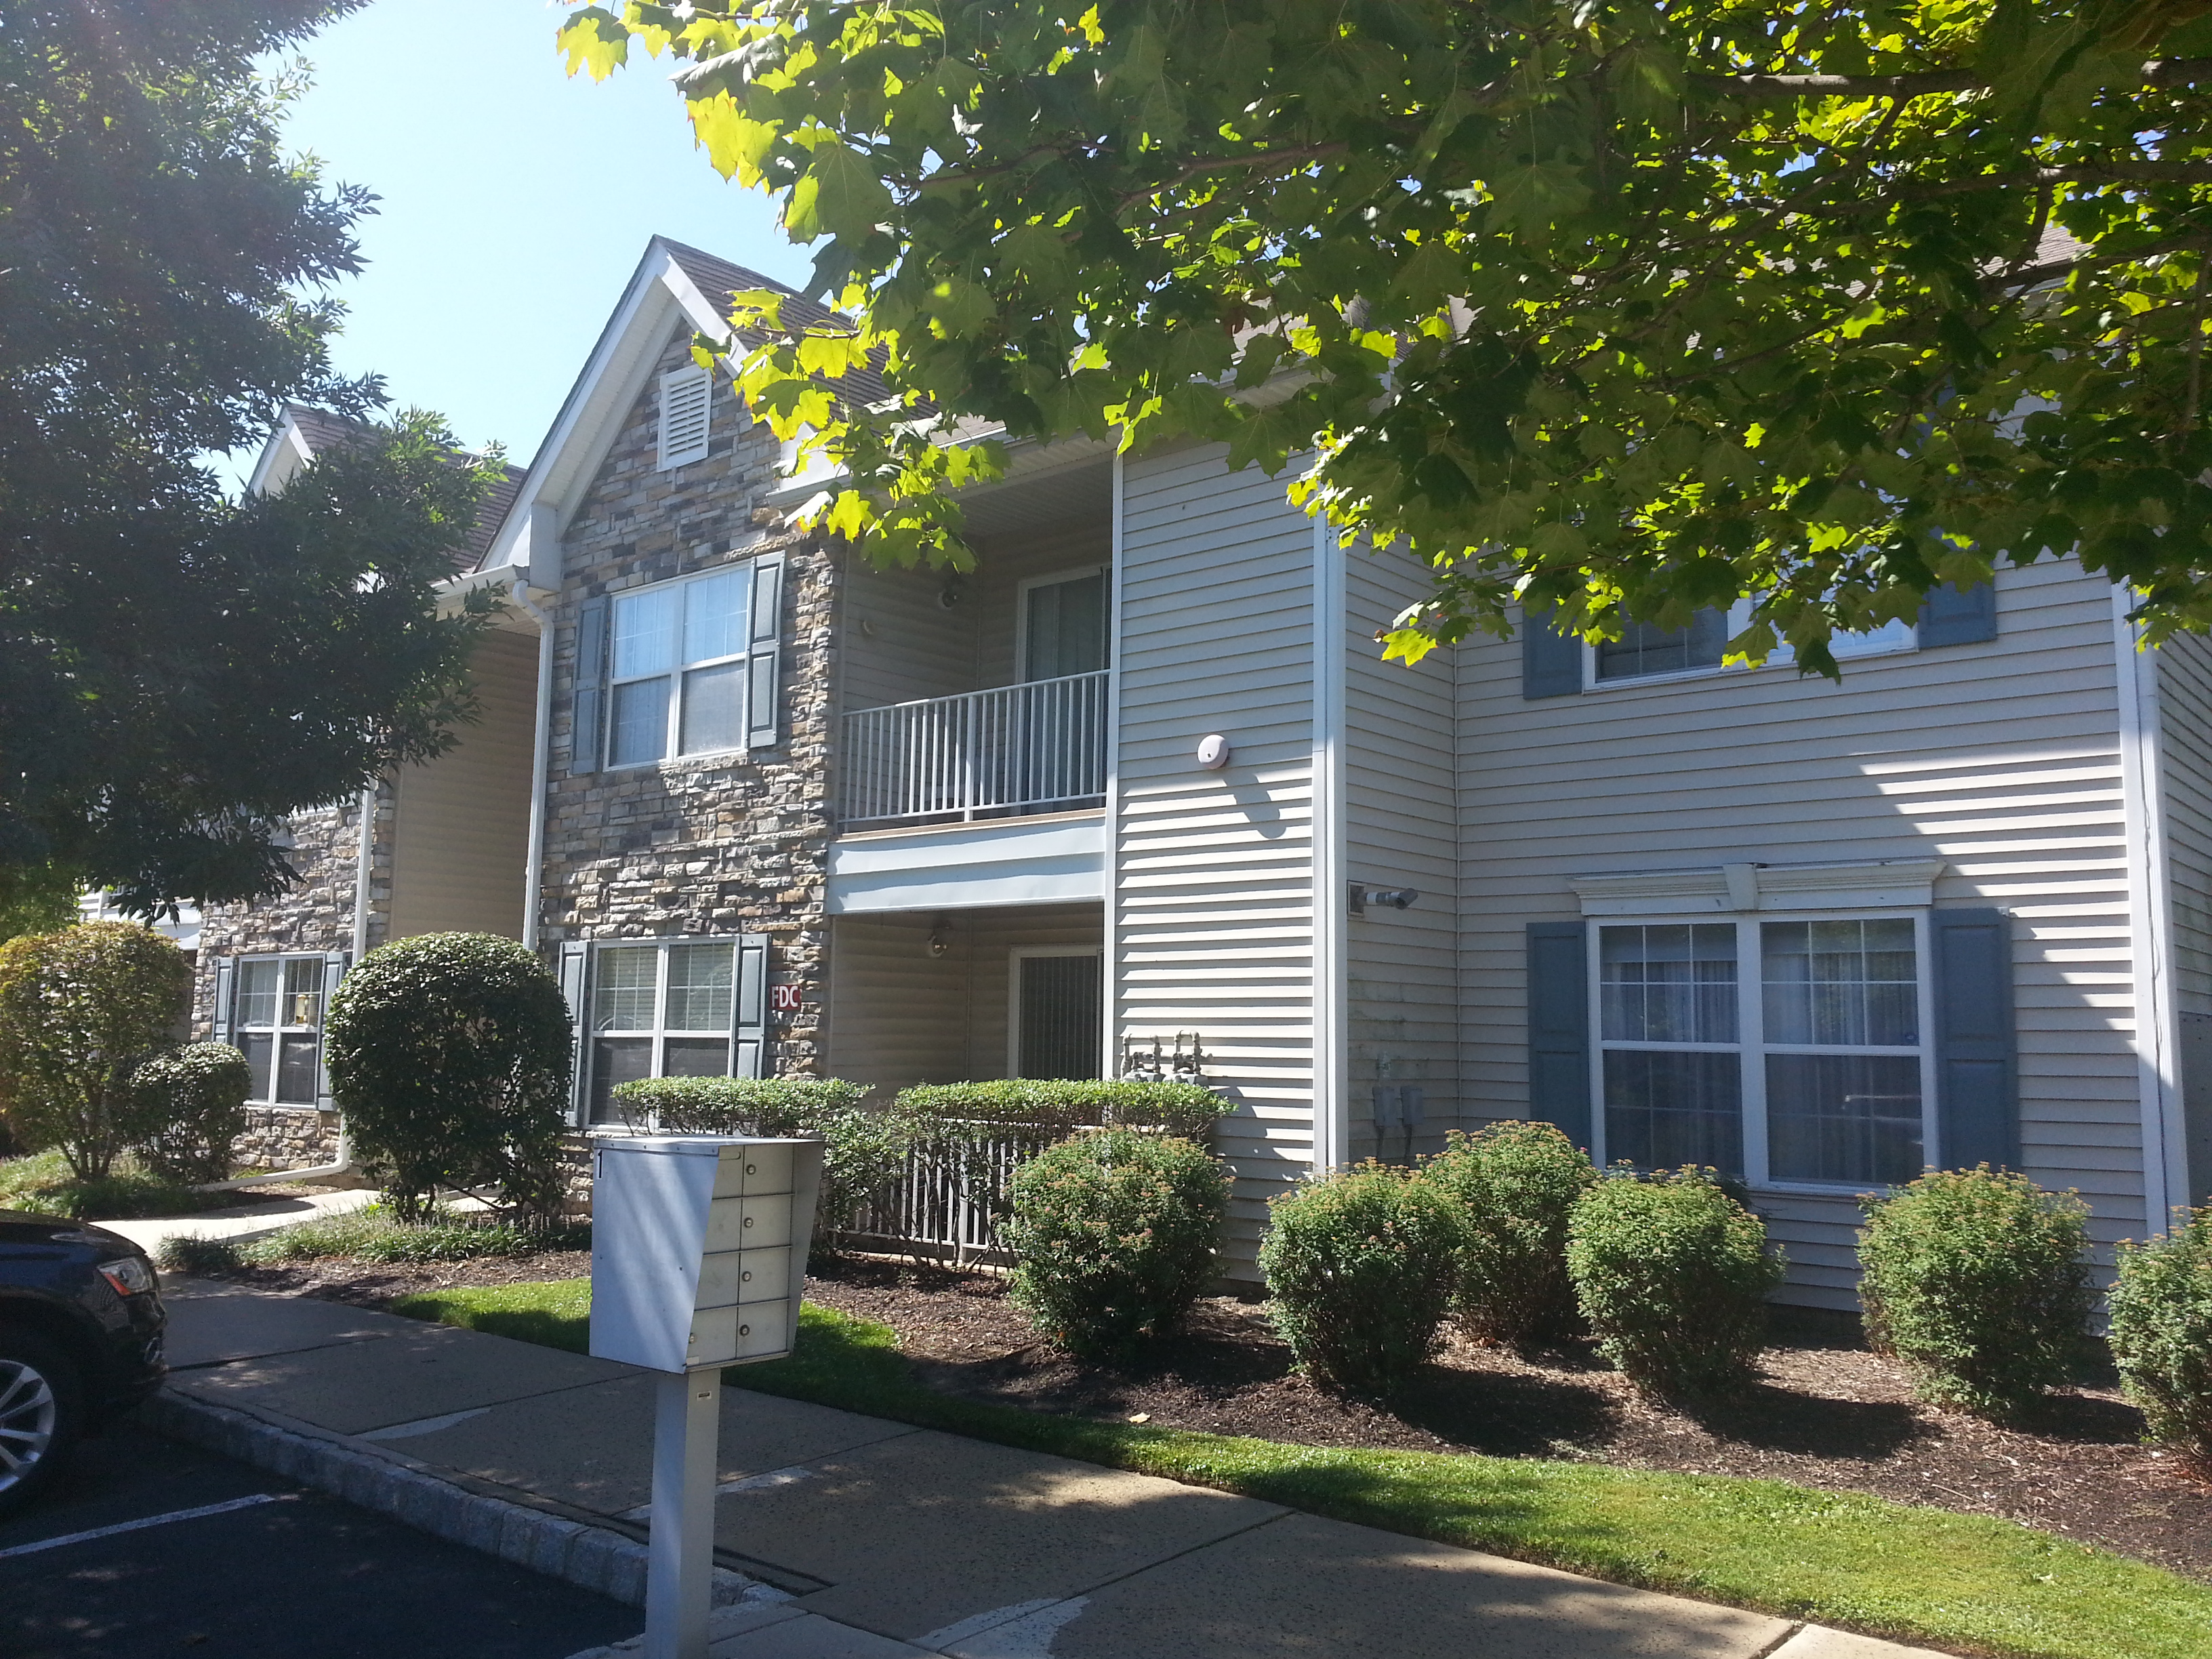 Beacon Place is a community of 2 bedroom, 2 bath, garden style condominiums.